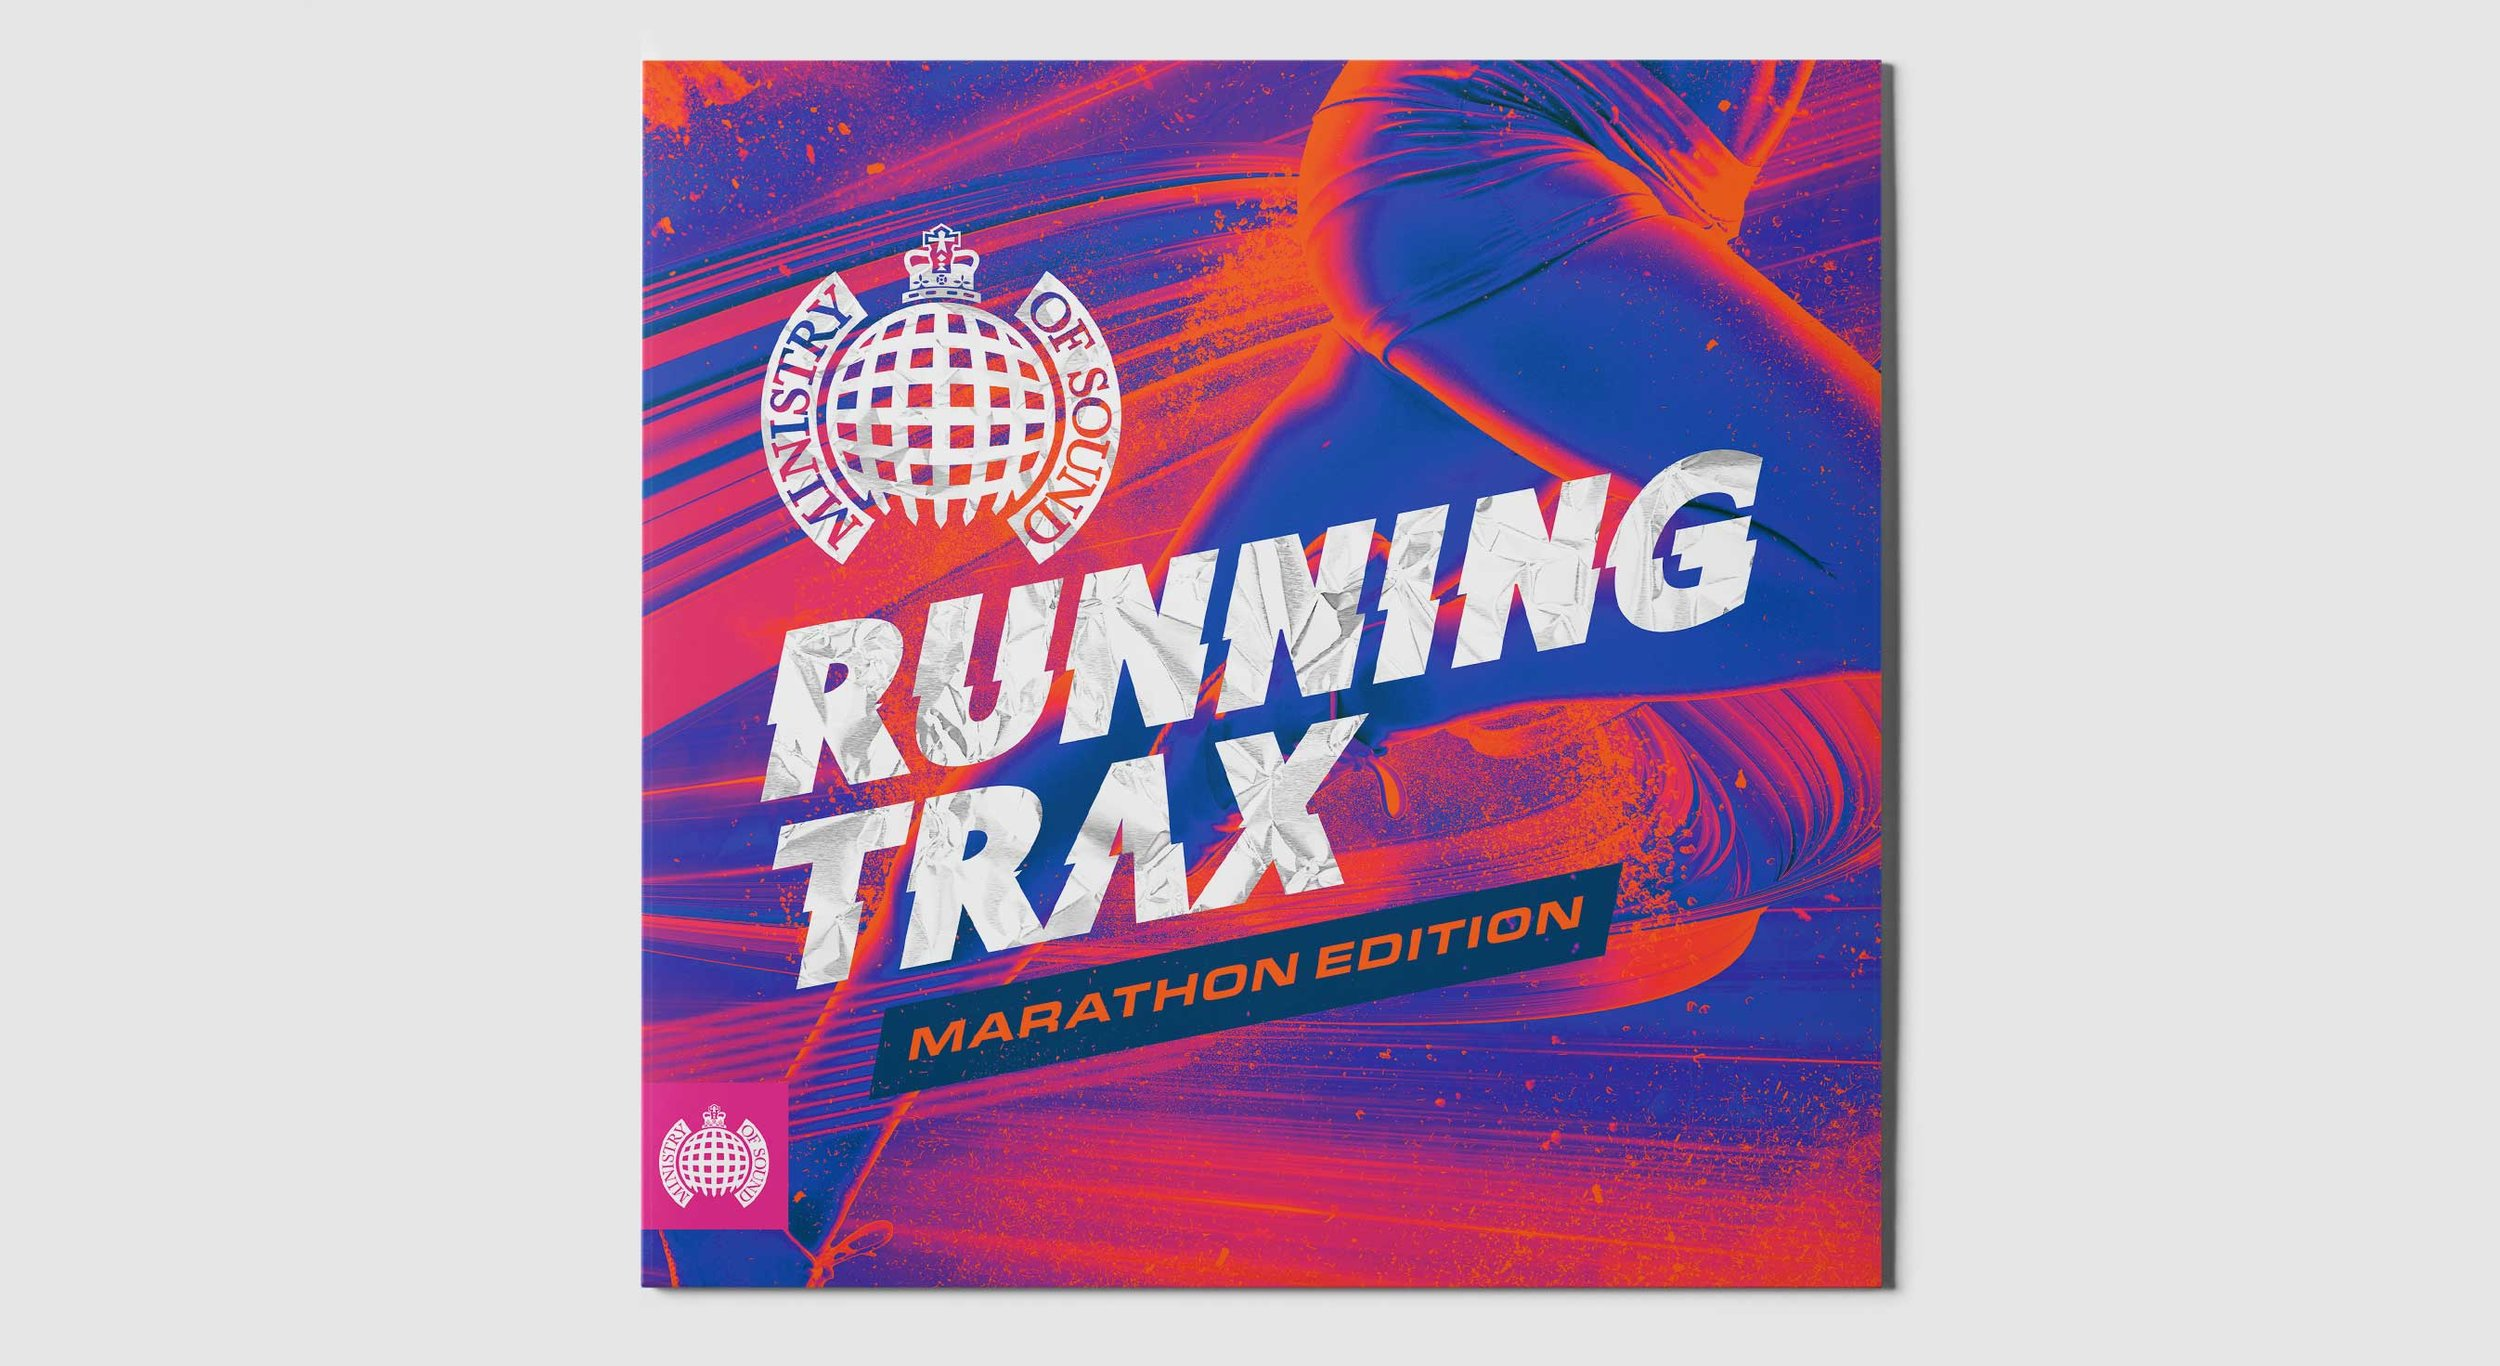 Ministry-of-sound-running-trax-irongiant-1.jpg